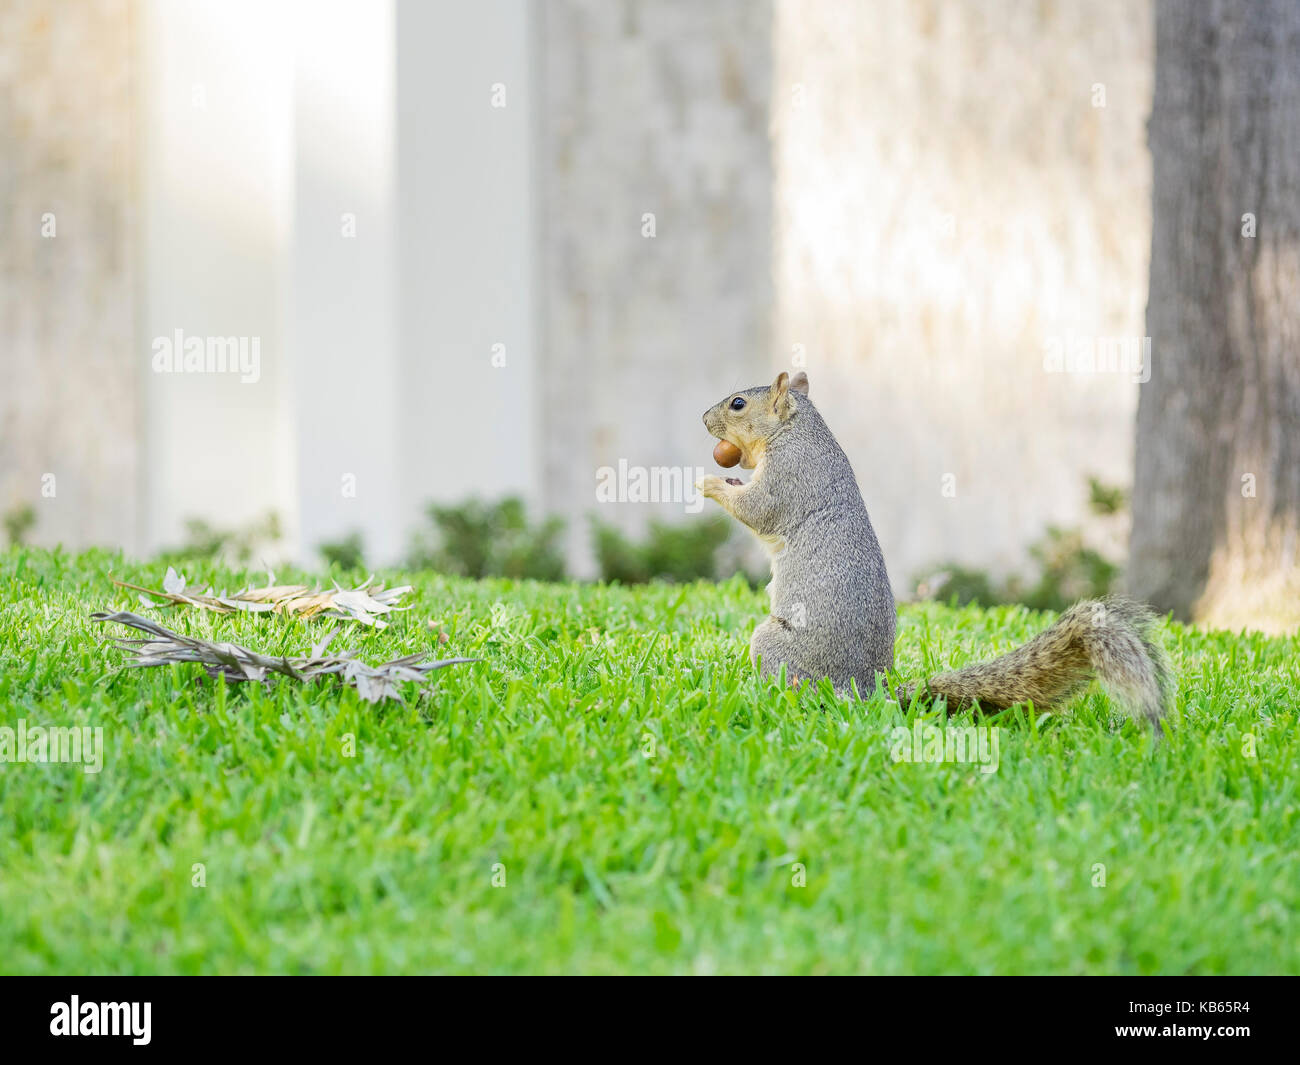 Cute small squirrel eating the nut - Stock Image